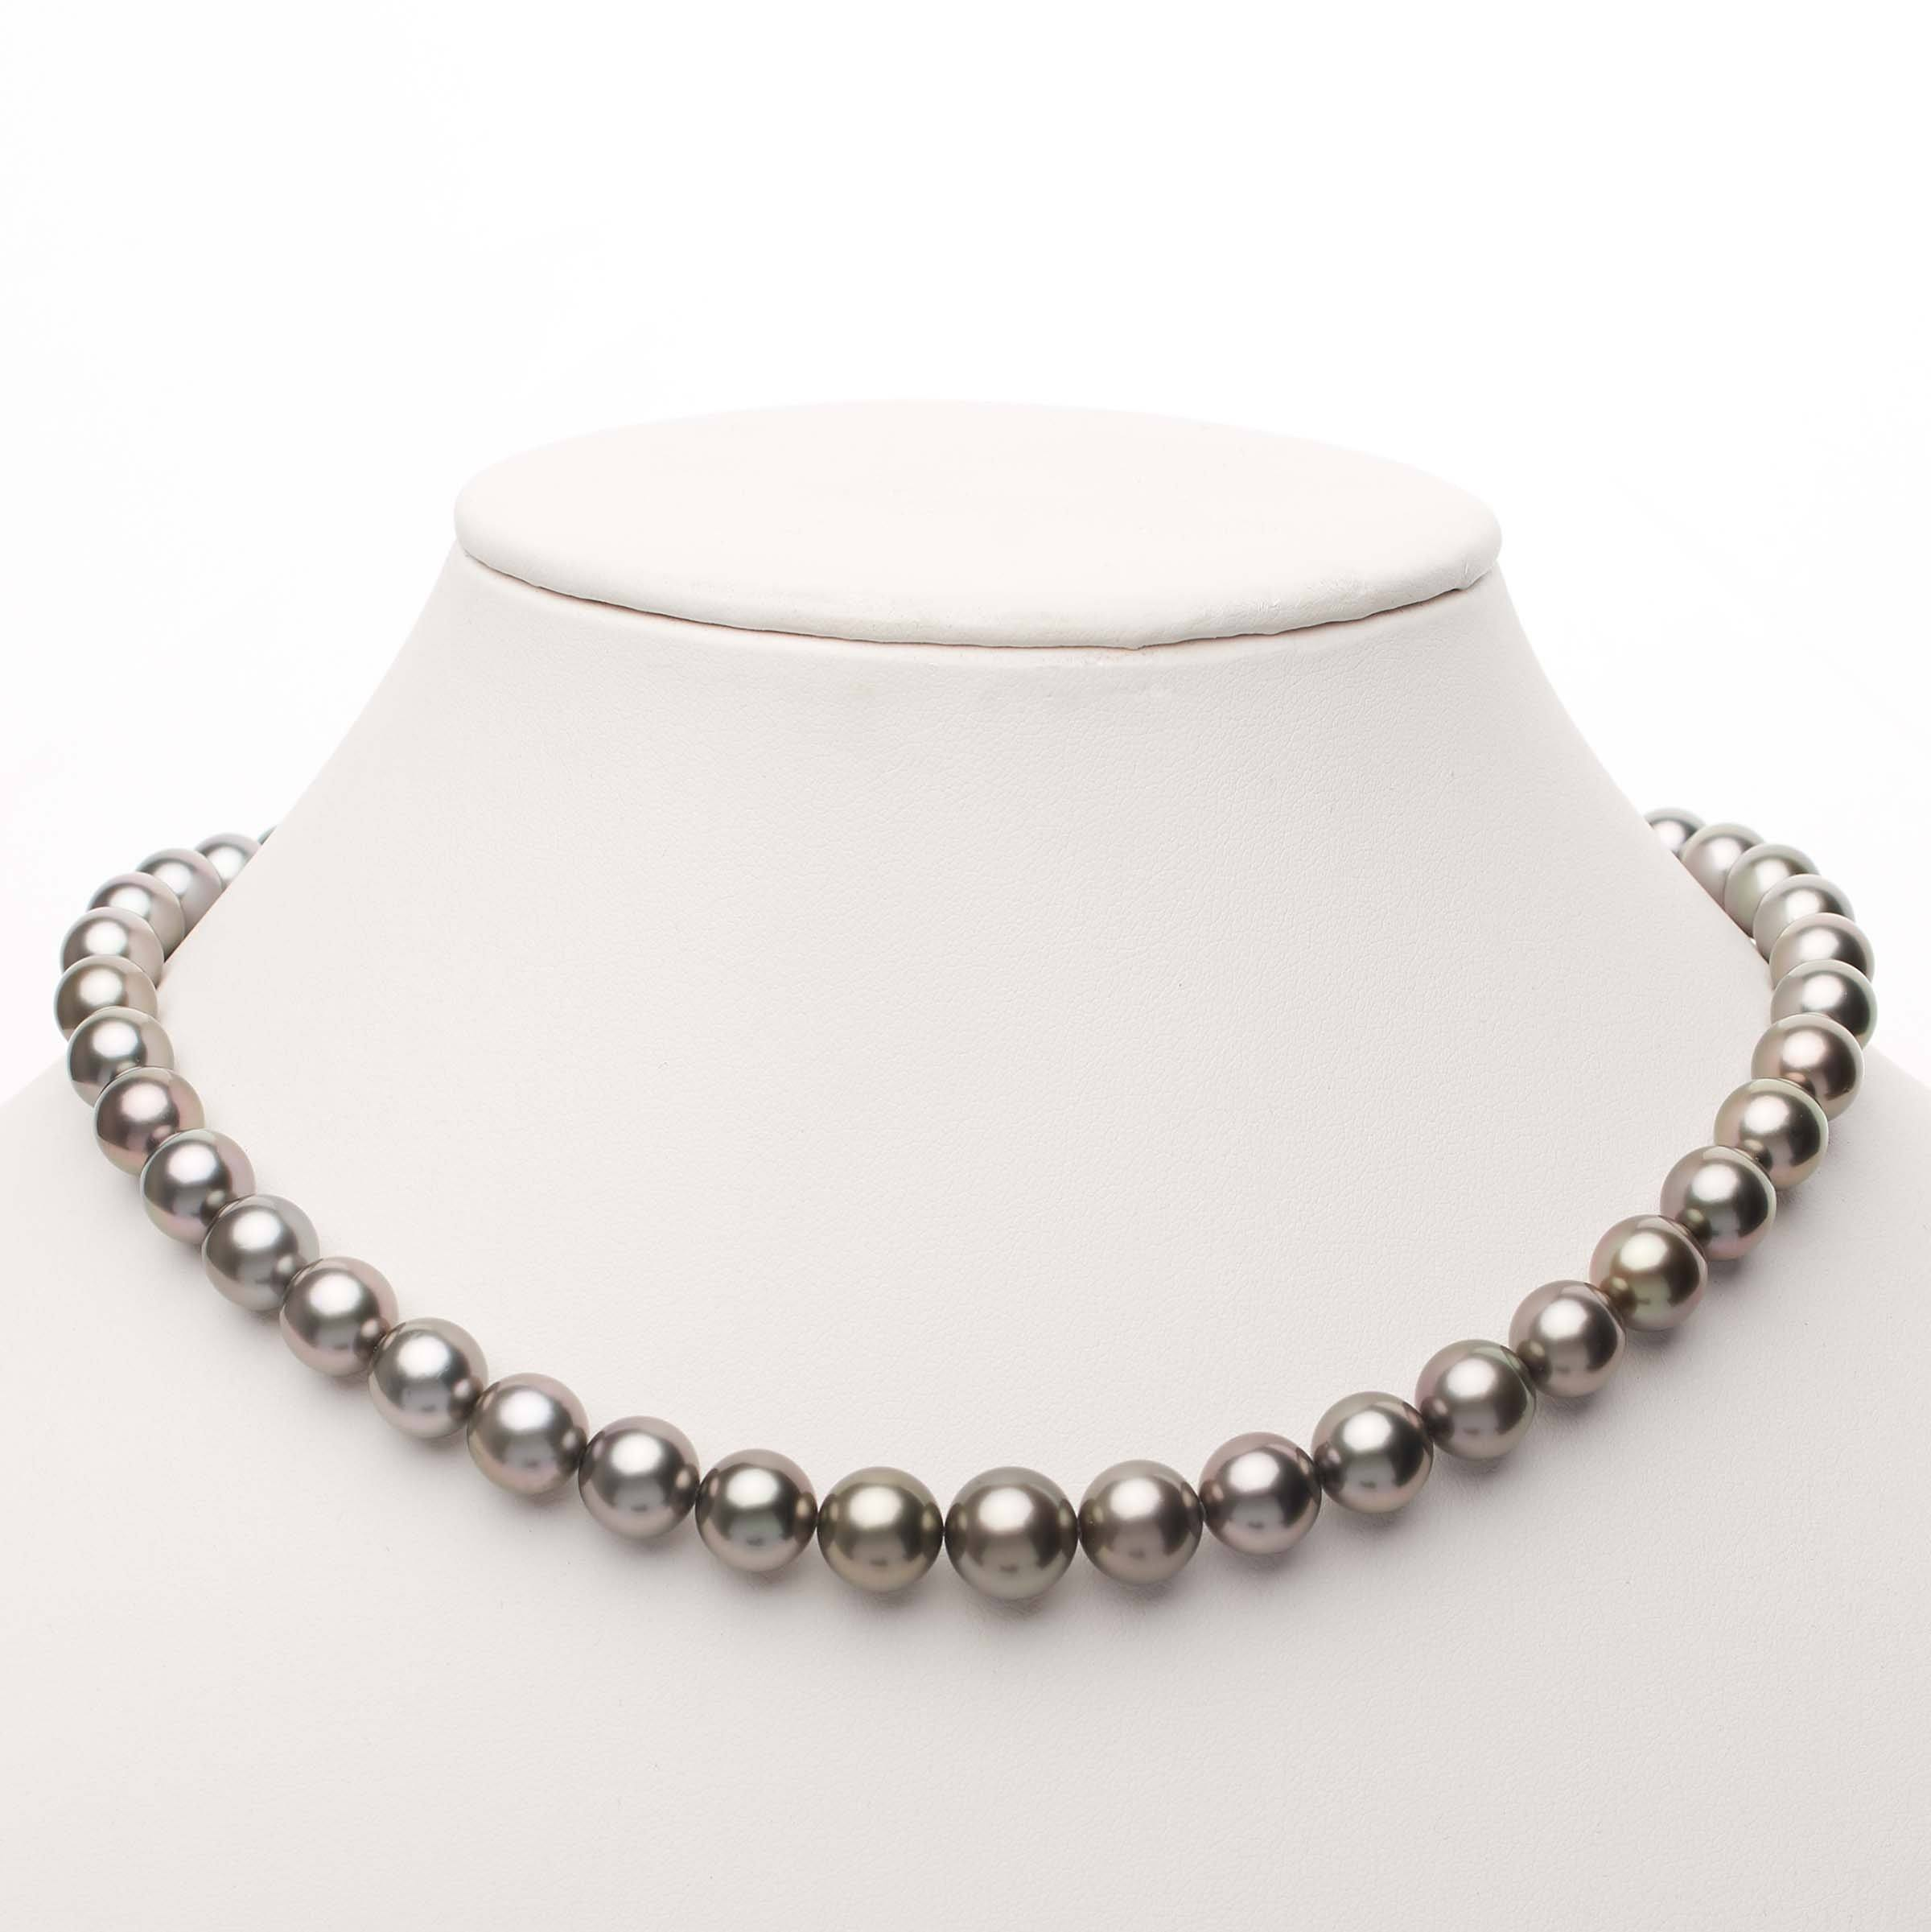 18-inch 8.0-10.5 mm AAA Round Tahitian Pearl Necklace